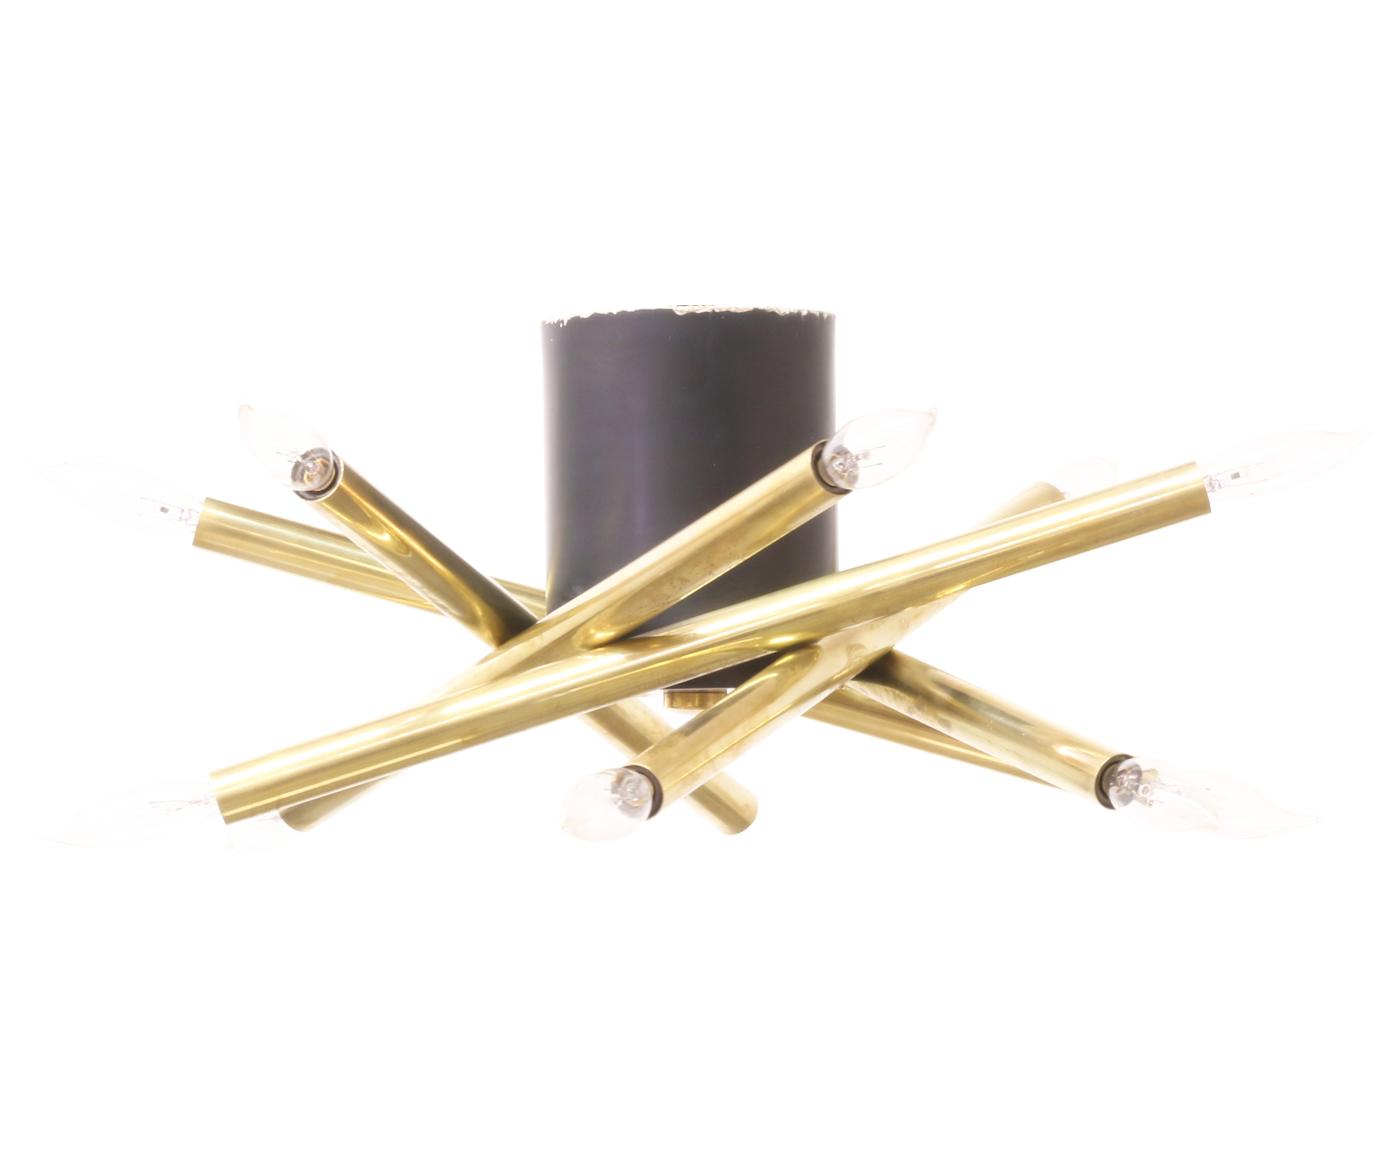 Brass ceiling lights modern 10 places to use warisan lighting brass ceiling lights modern 10 places to use aloadofball Gallery